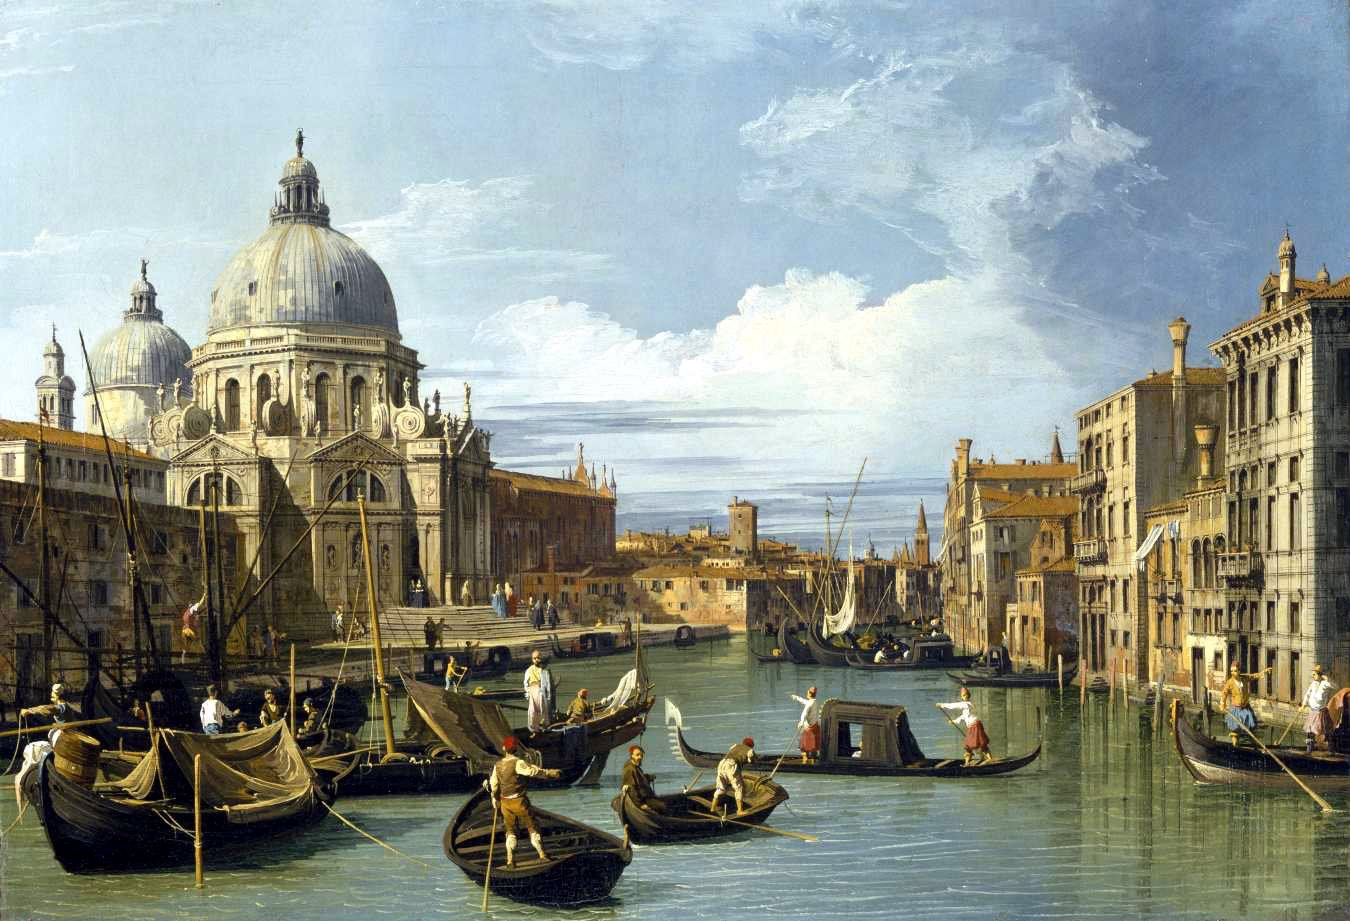 Entrance to the Grand Canal, Venice, Italy, by Canaletto, circa 1730